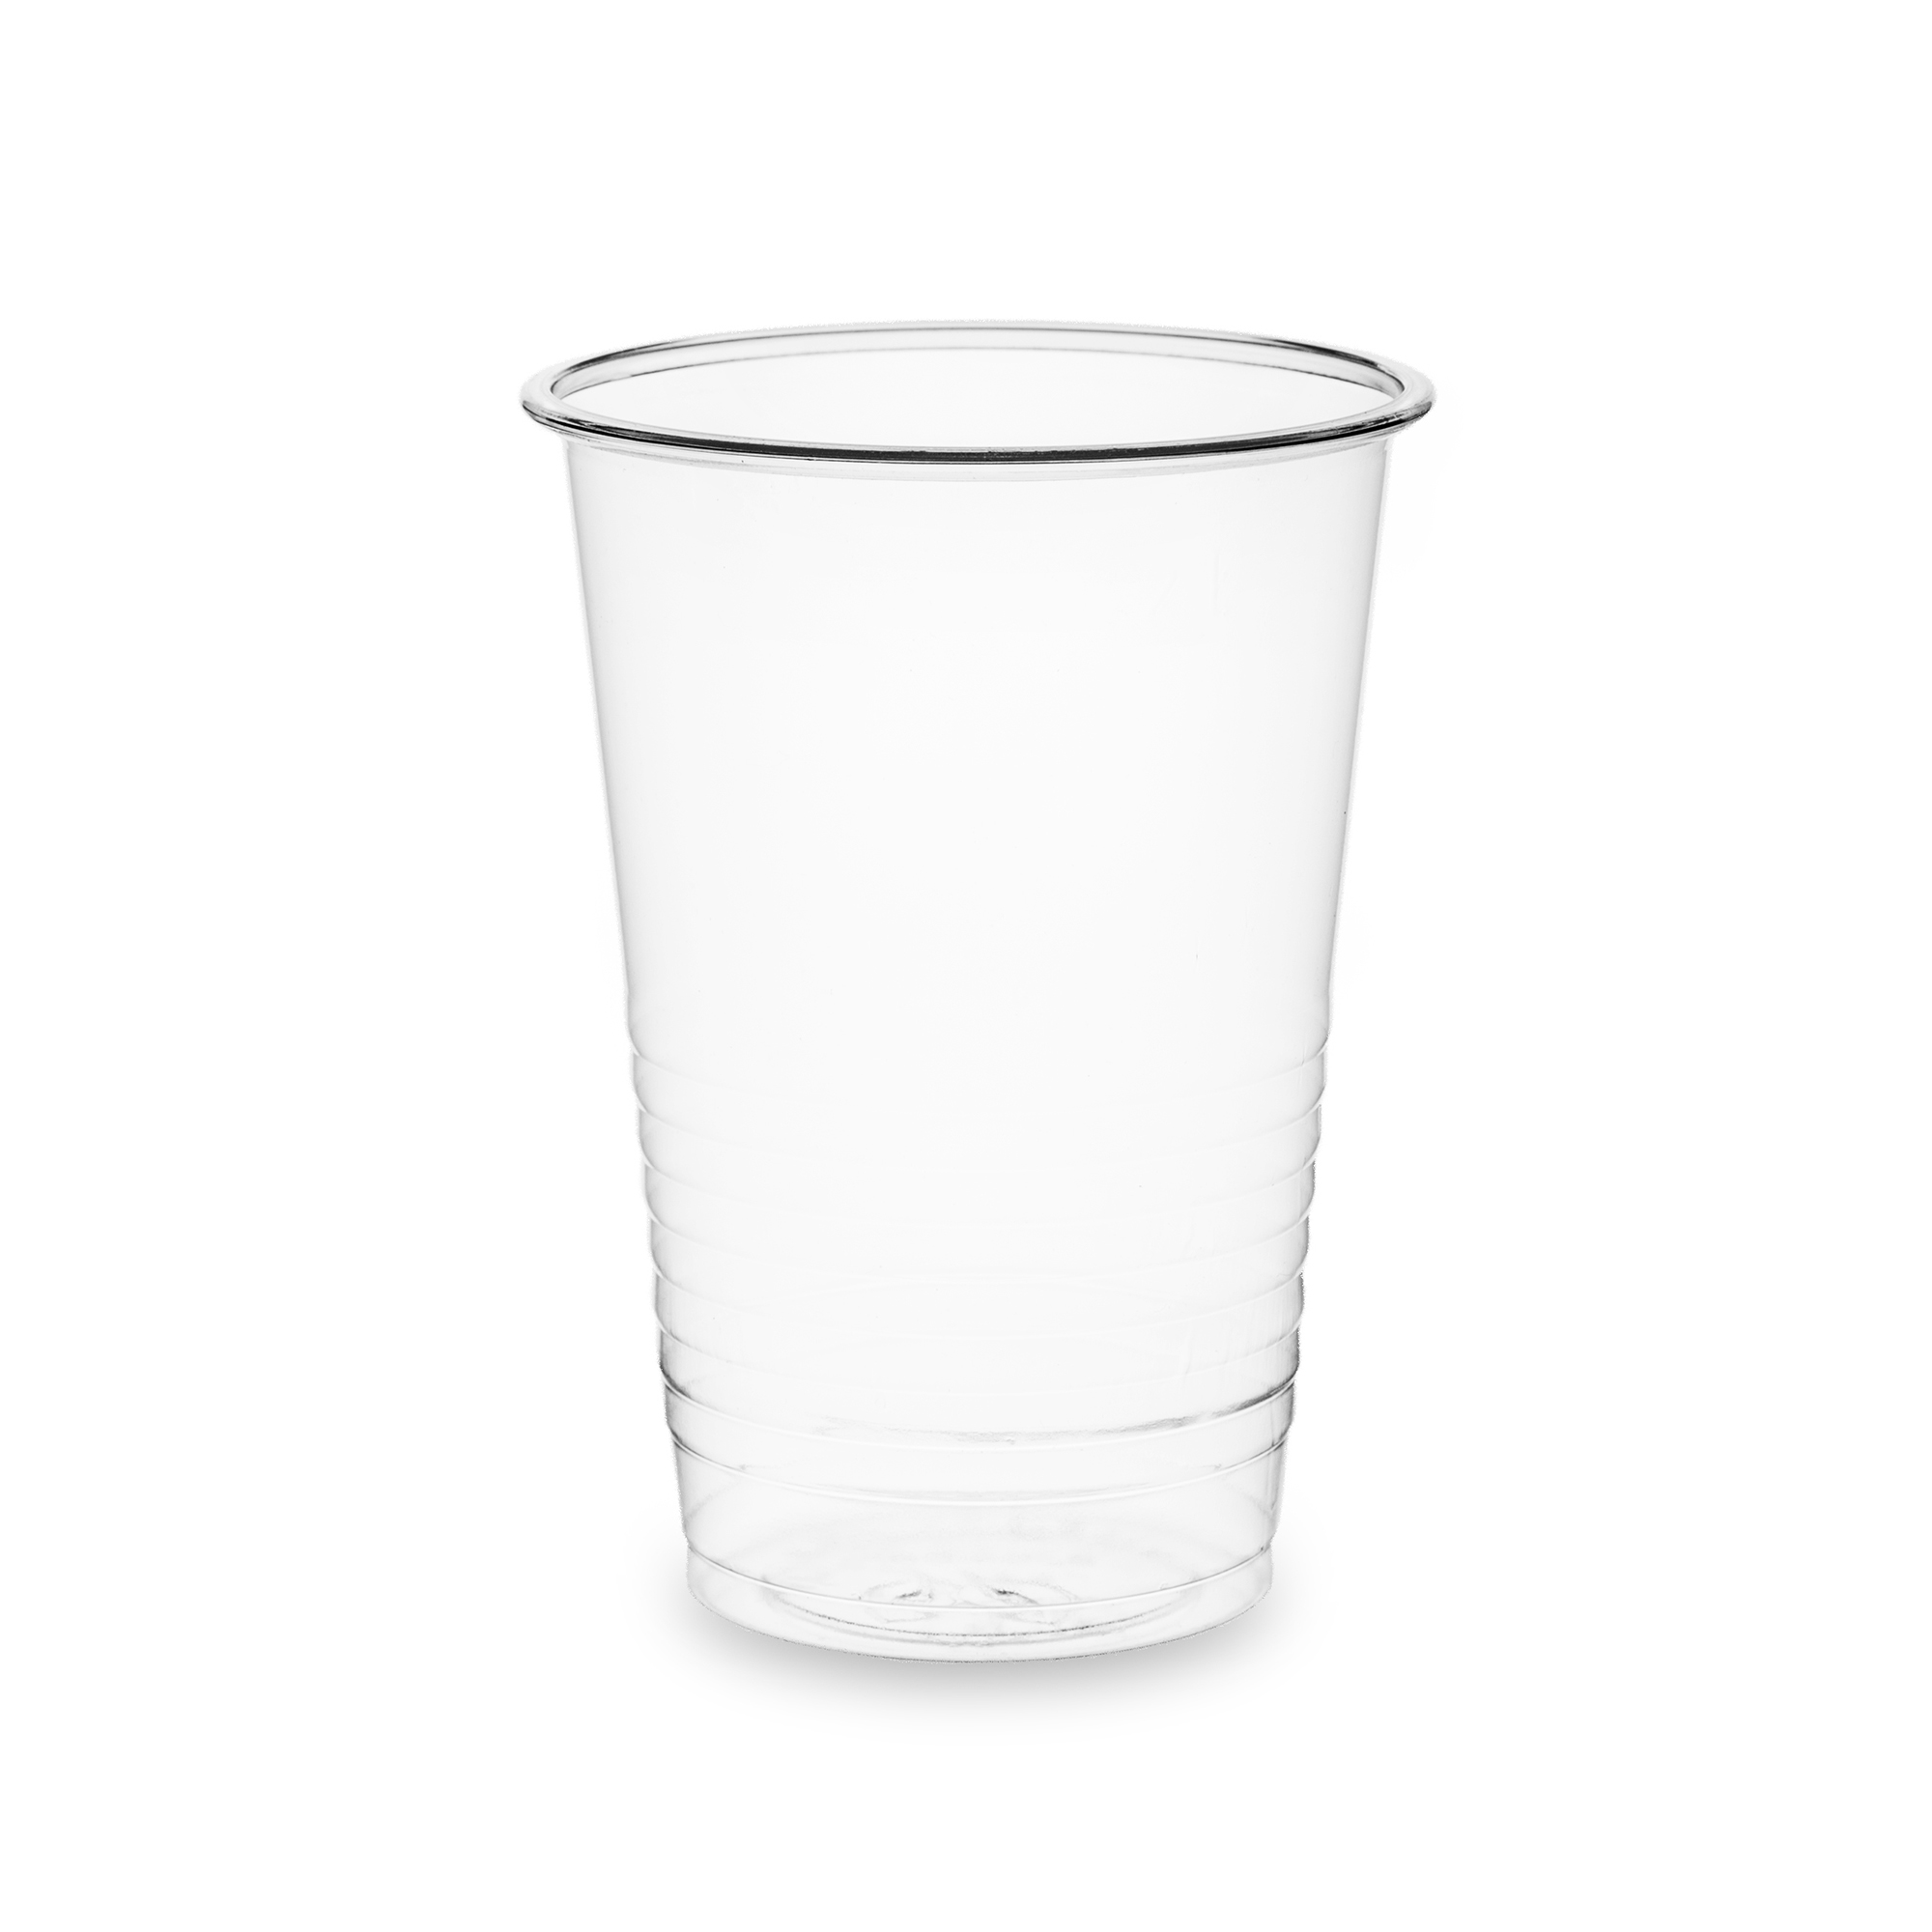 Domestic disposable cups or glasses or lids Vegware Water Cups 7oz PLA Clear Ref VWC-07 Pack 100